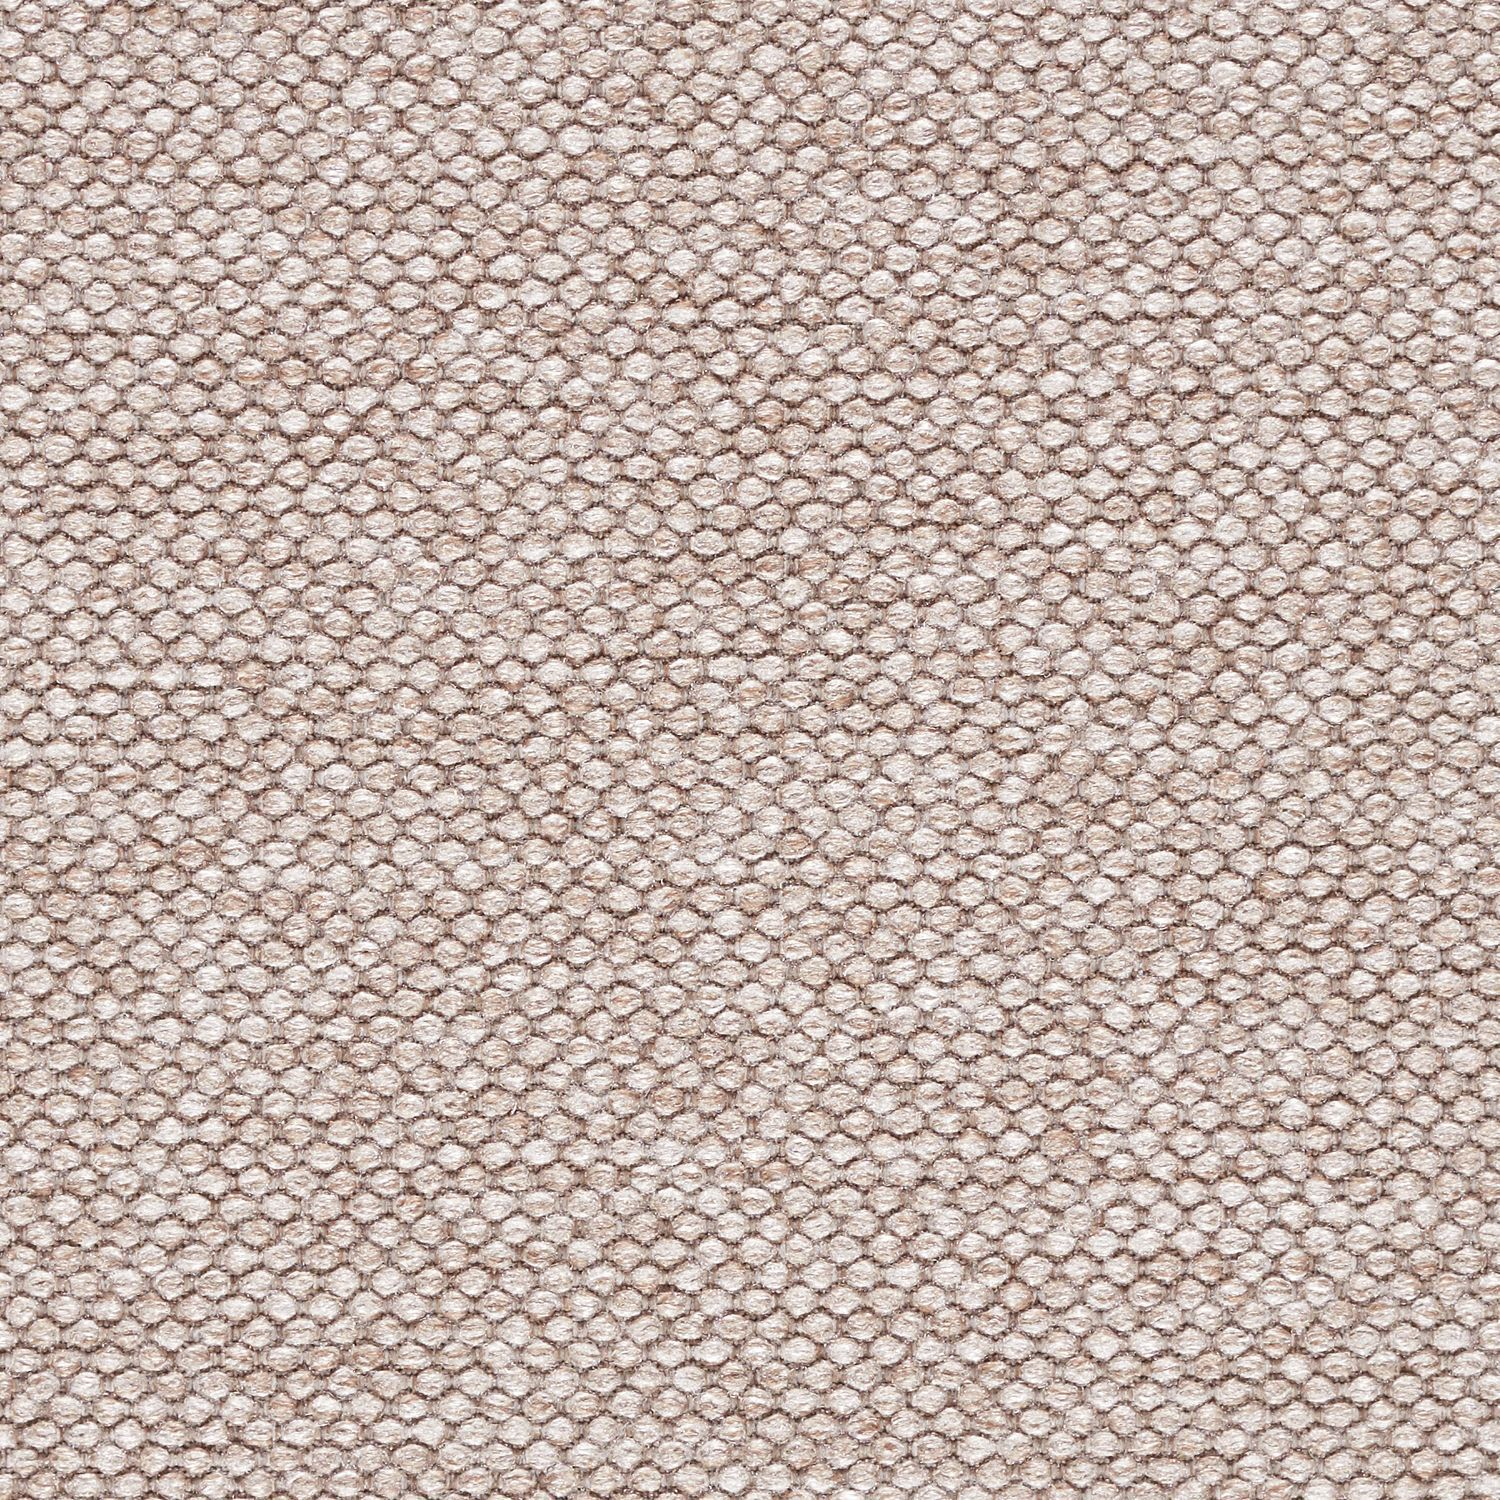 Low-D313_Flax-Tweed